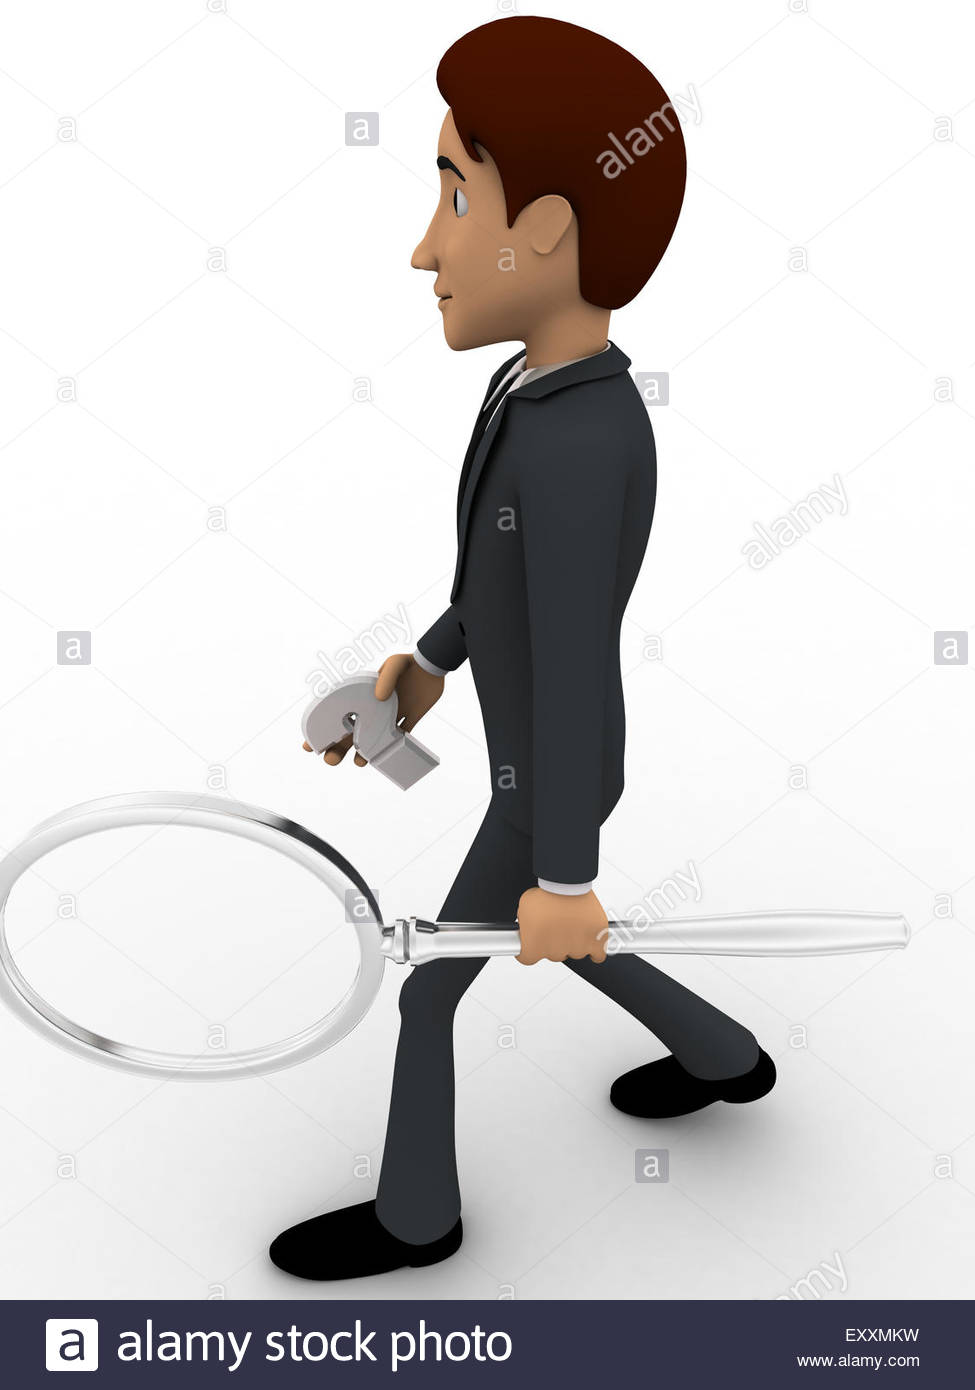 3d person with magnifying glass and question mark stock images image - 3d Man With Question Mark And Magnifying Glass Concept On White Background Side Angle View